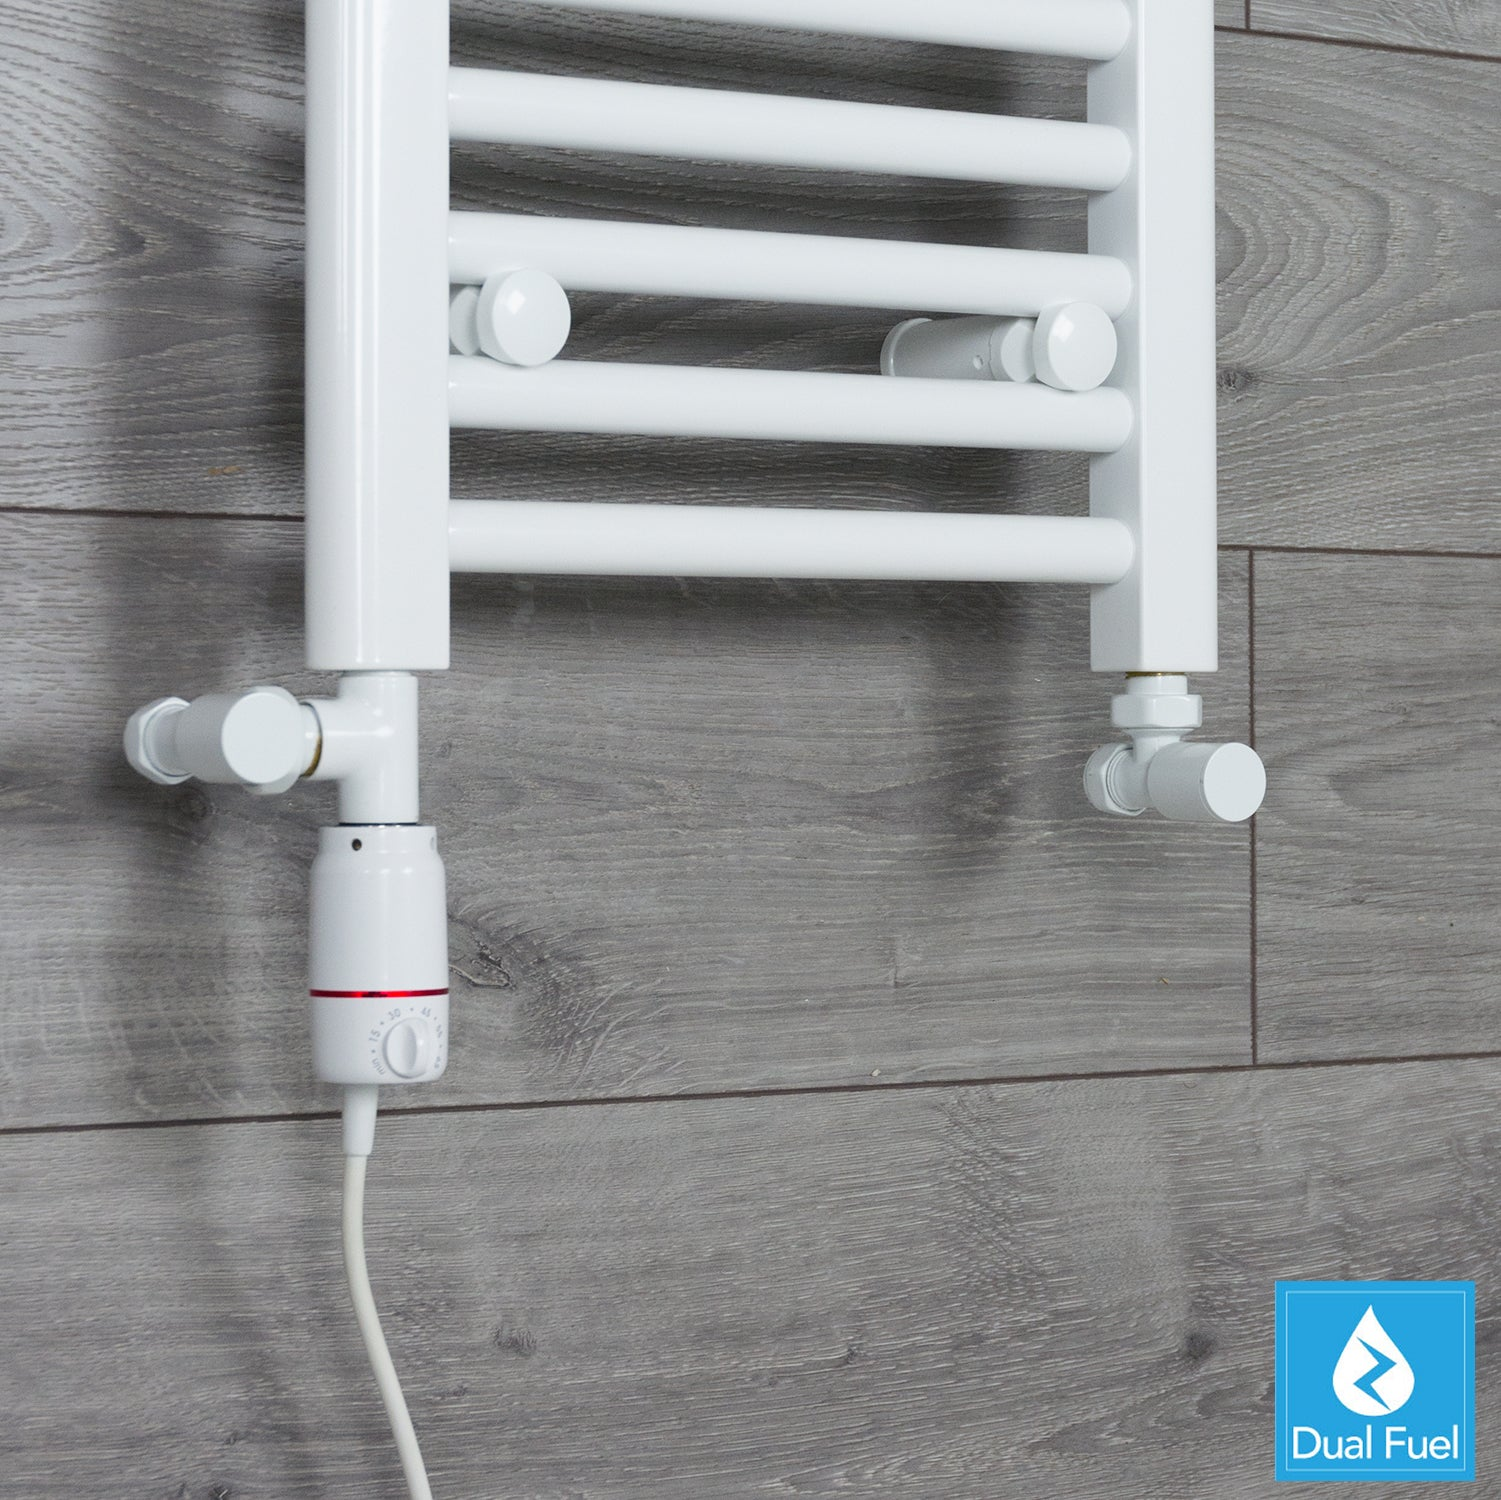 GT White Thermostatic Heating Element Dual Fuel Kit Heated Towel Rail Radiator